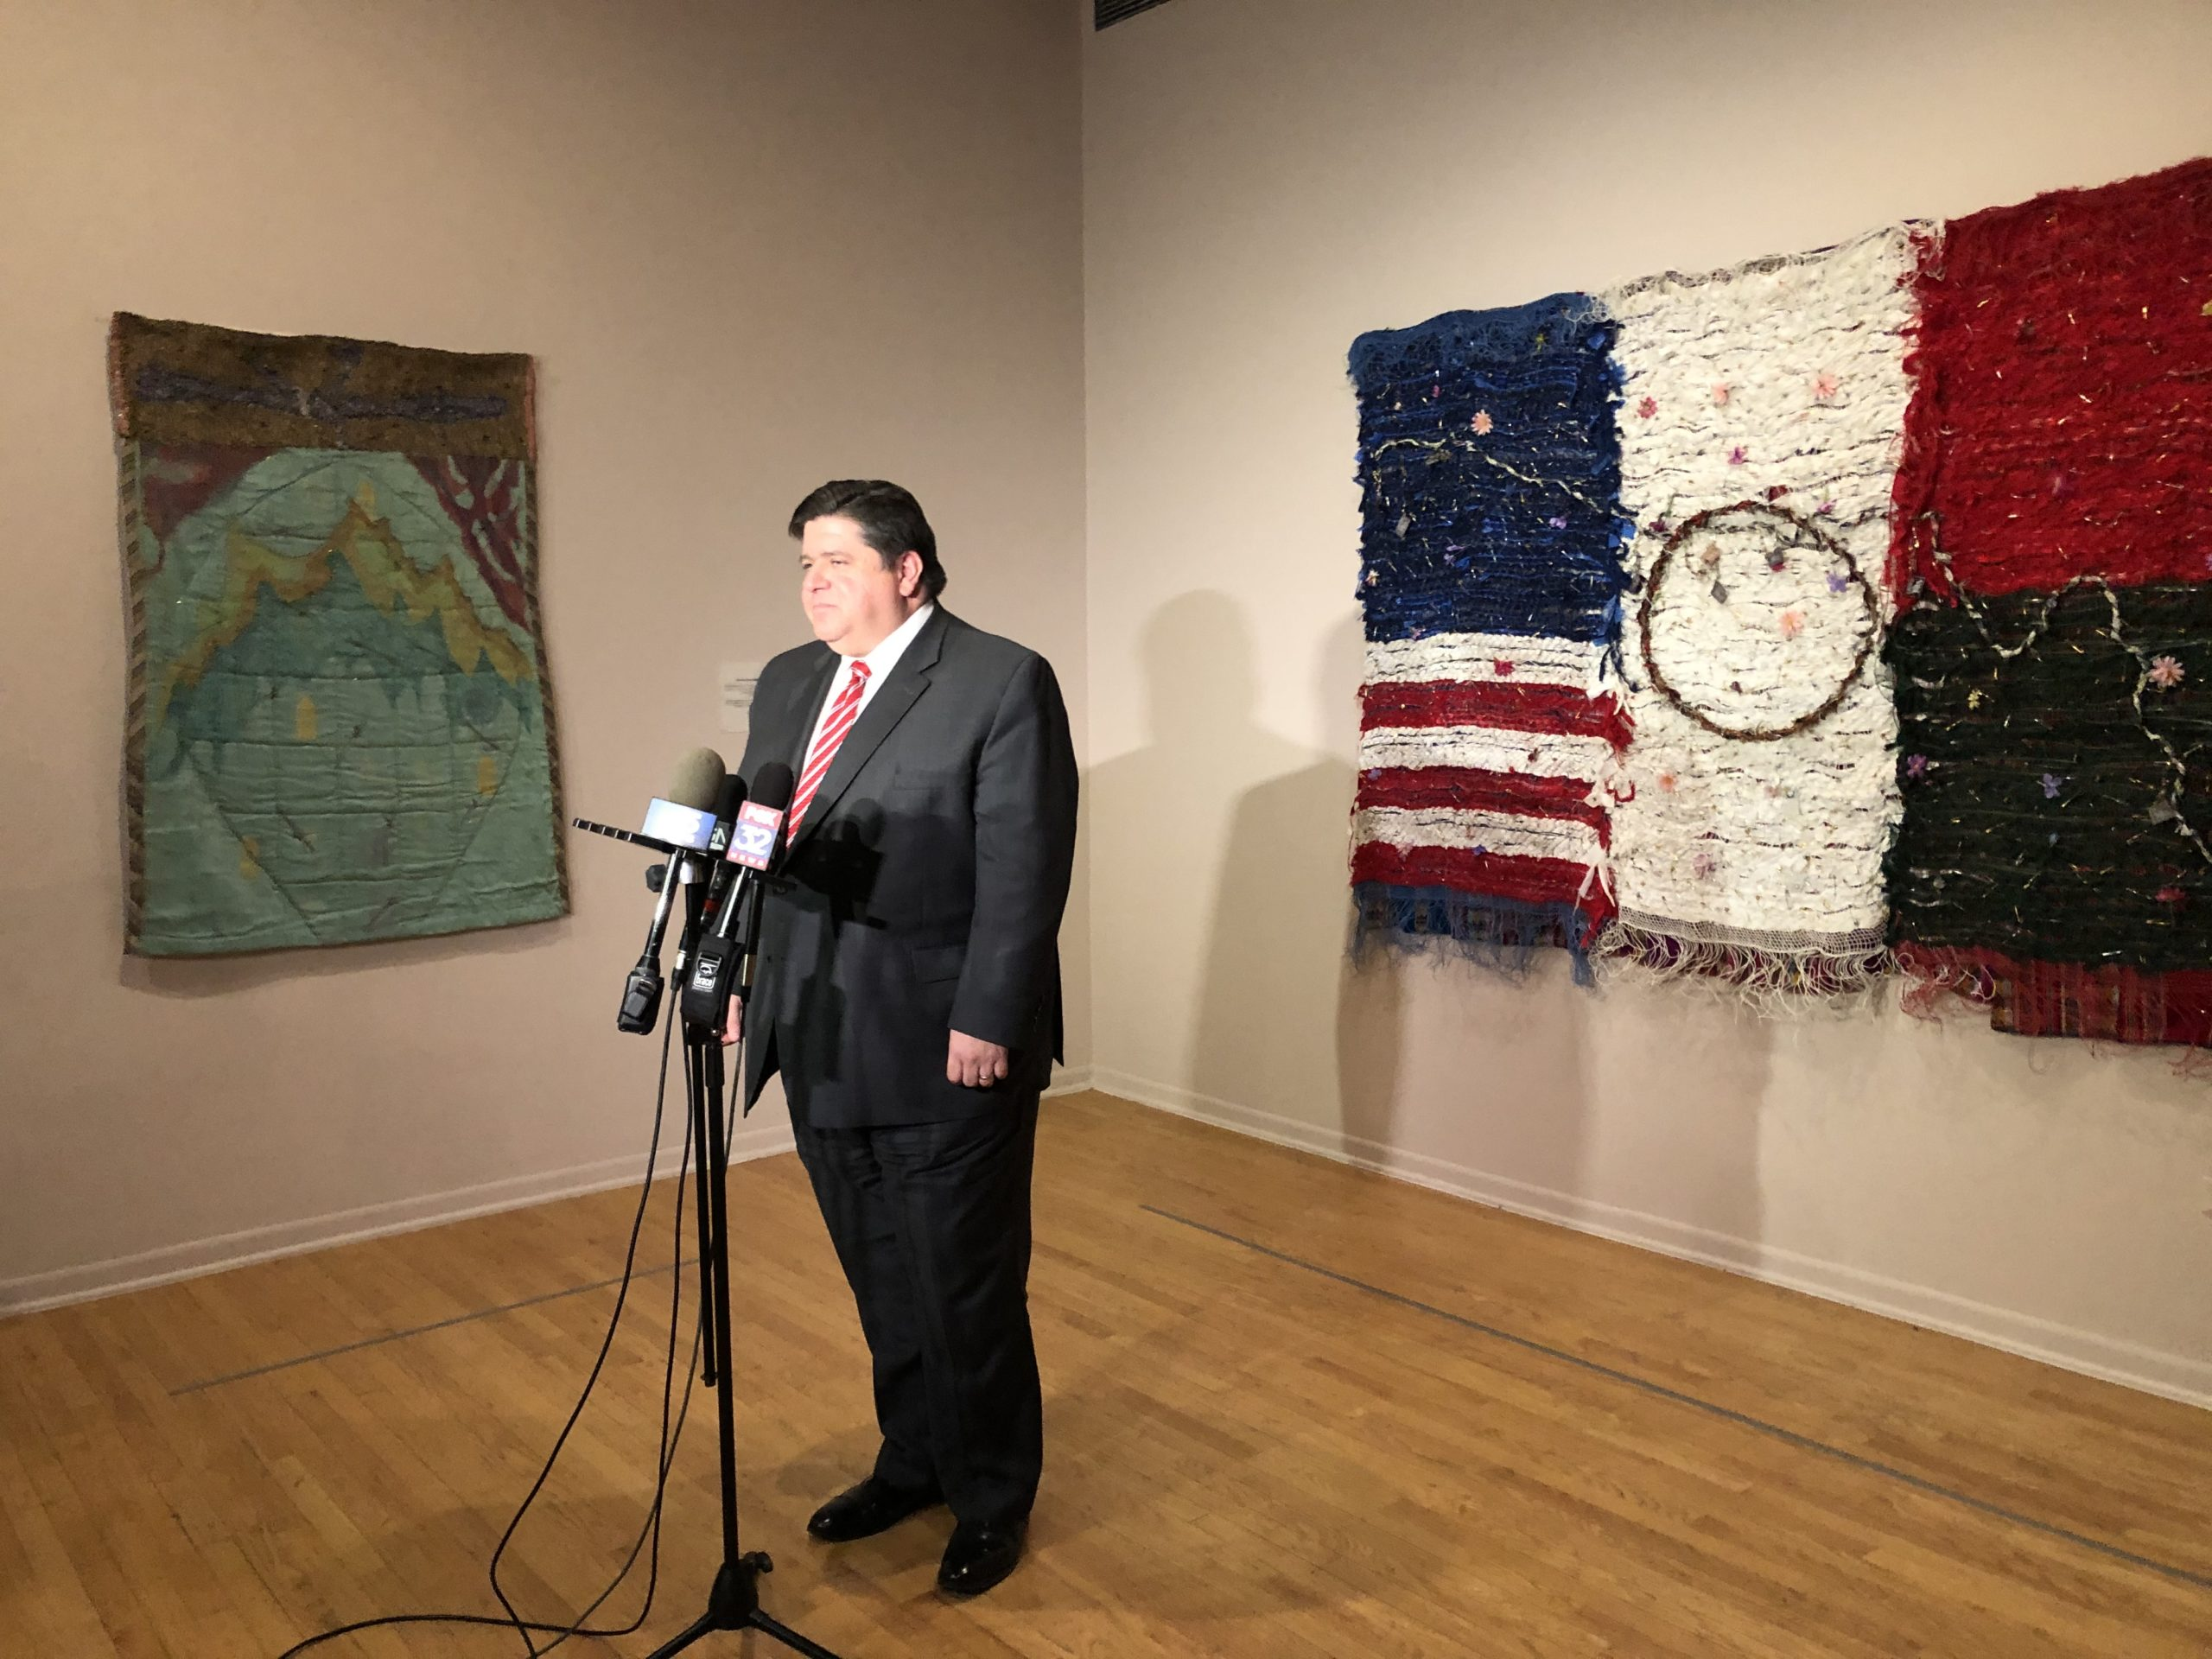 Gov. J.B. Pritzker announced the next phase of his early education agenda Jan. 21 at the National Museum of Mexican Art in Pilsen.